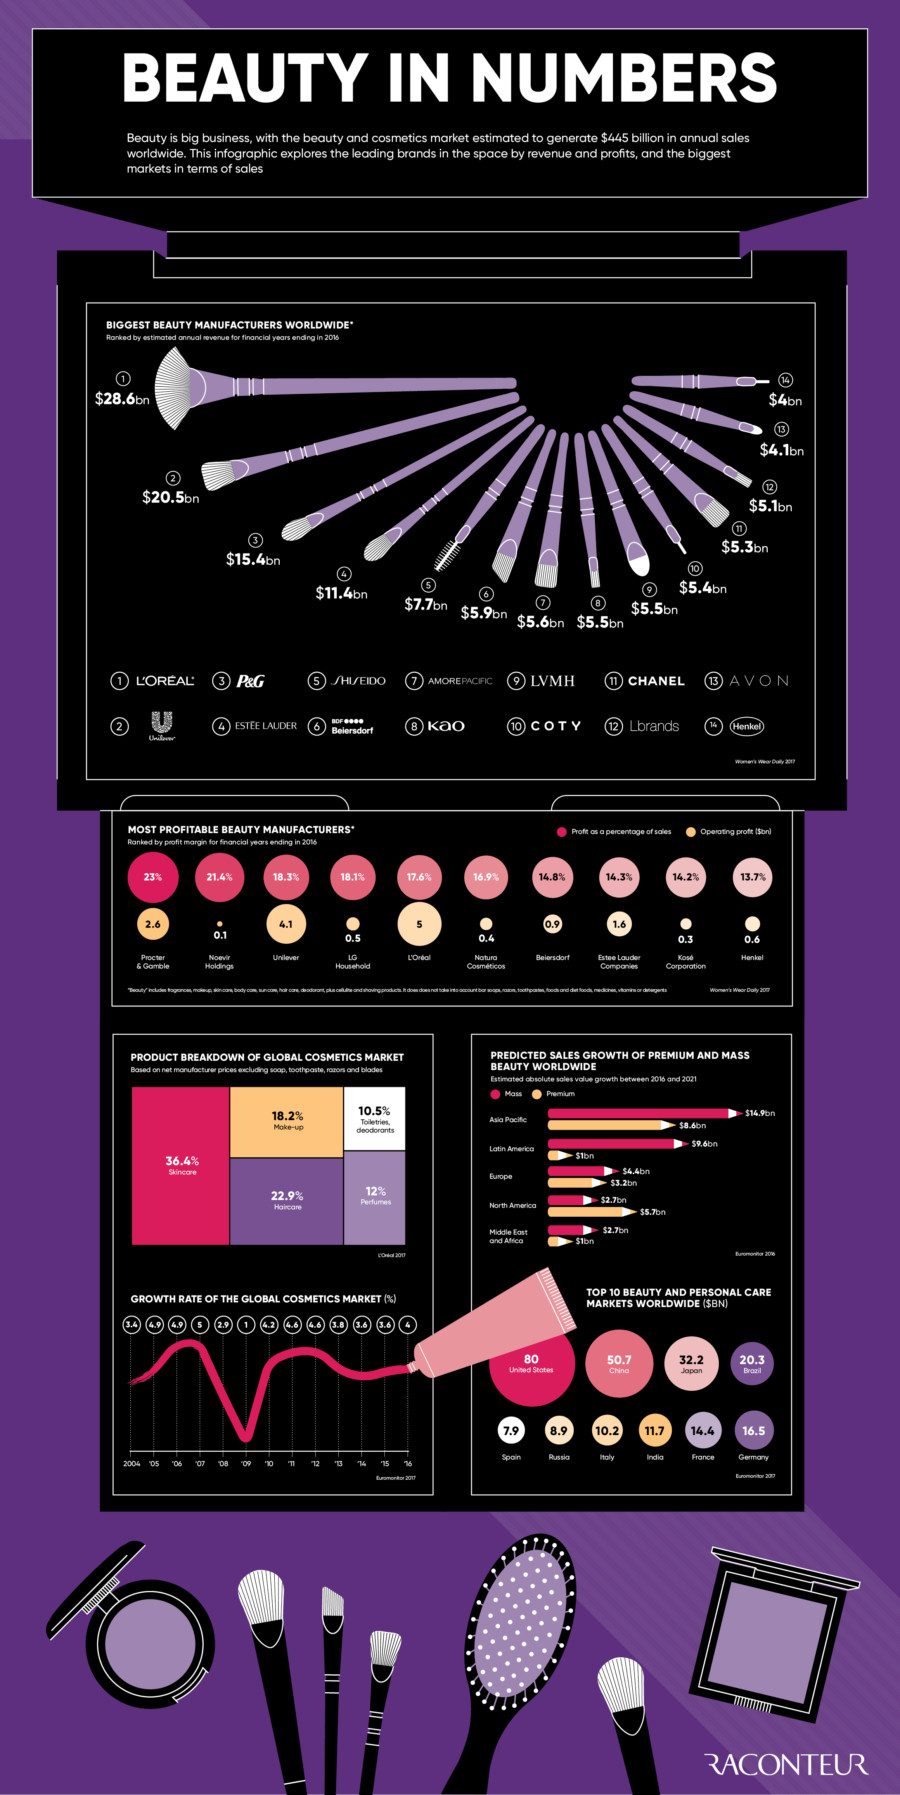 Beauty in numbers infographic